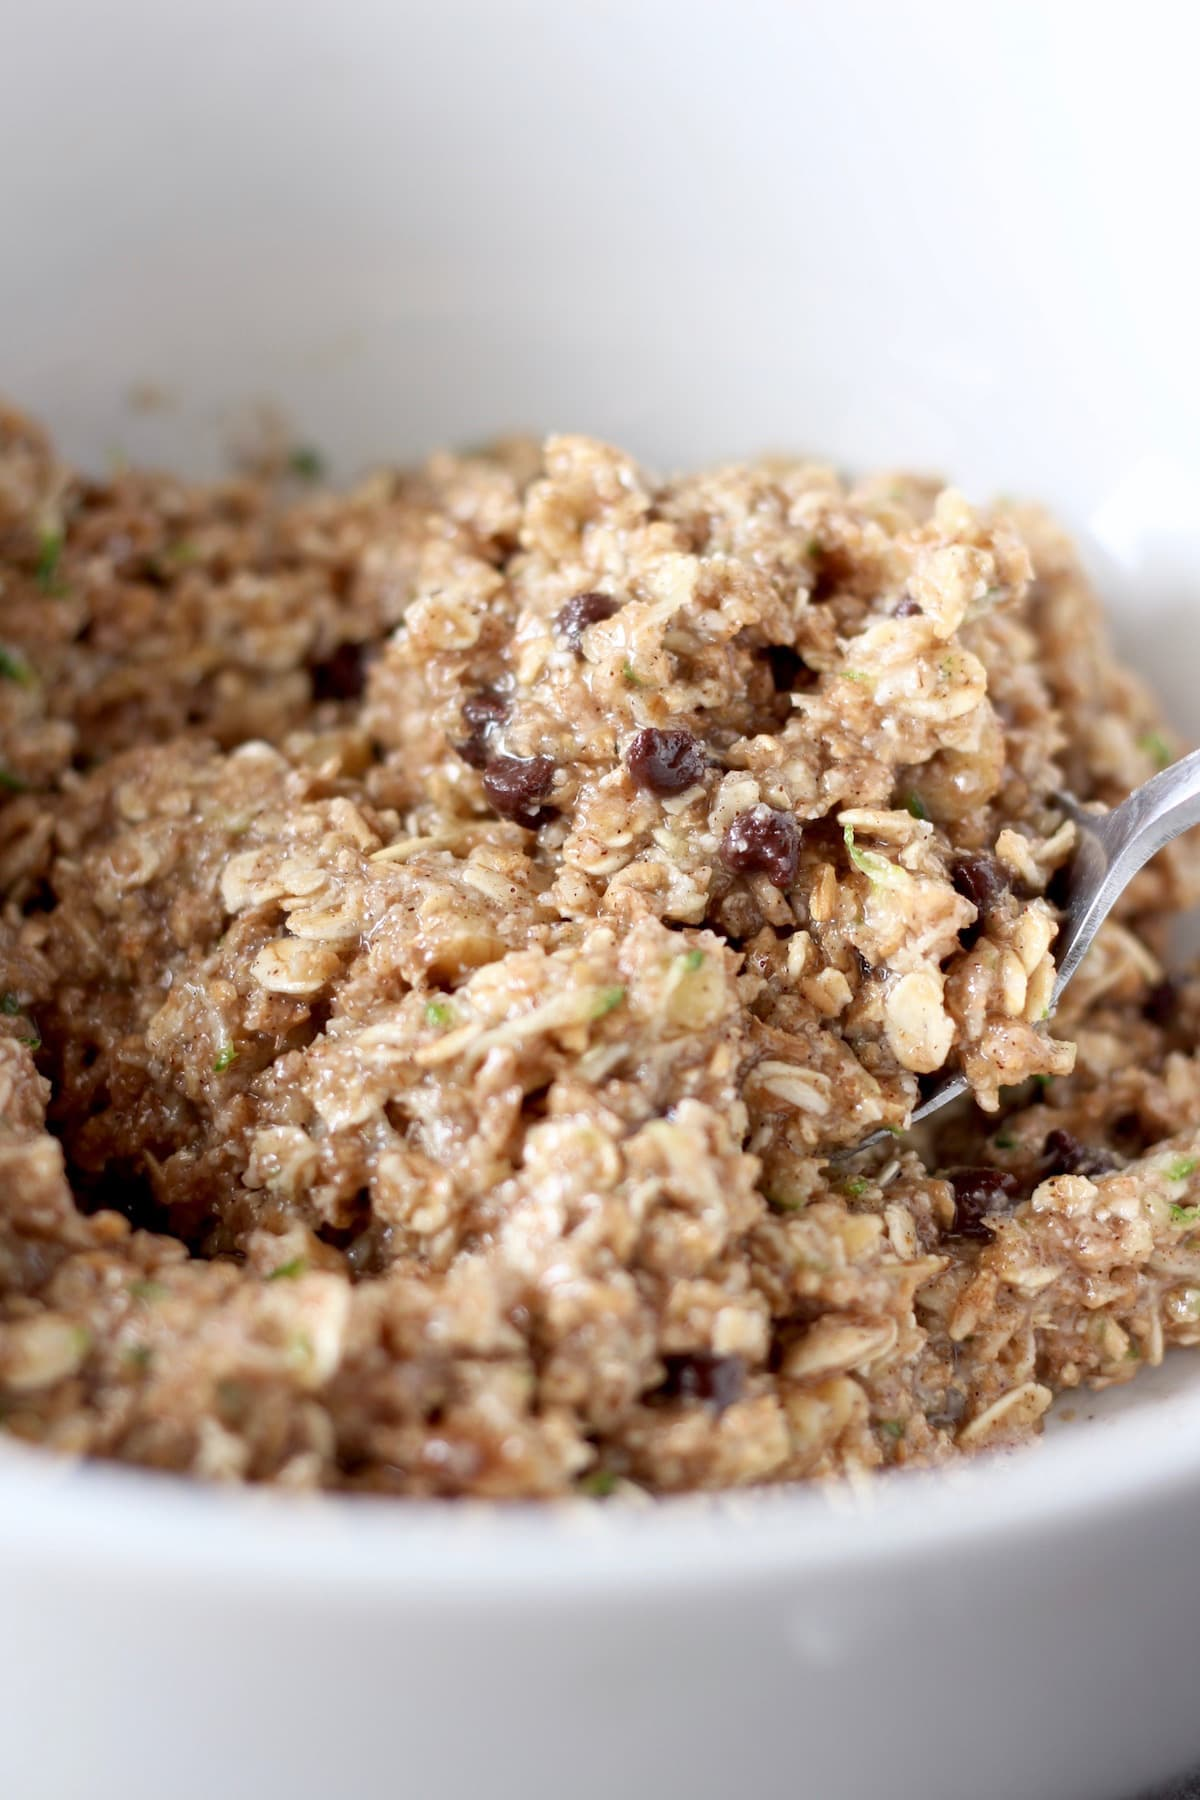 zucchini oatmeal cookie dough being mixed in a bowl